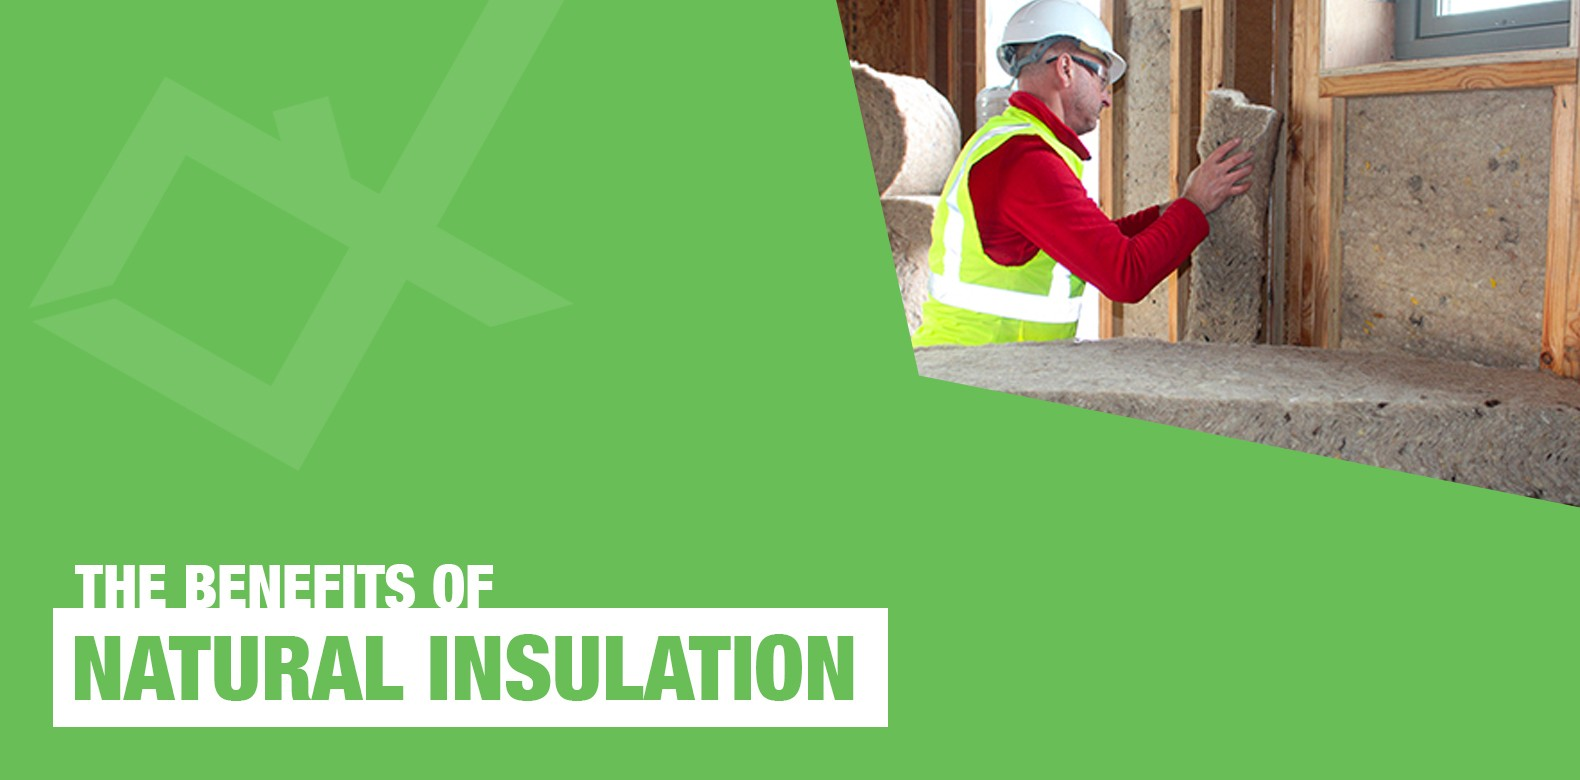 The Benefits of Natural Insulation